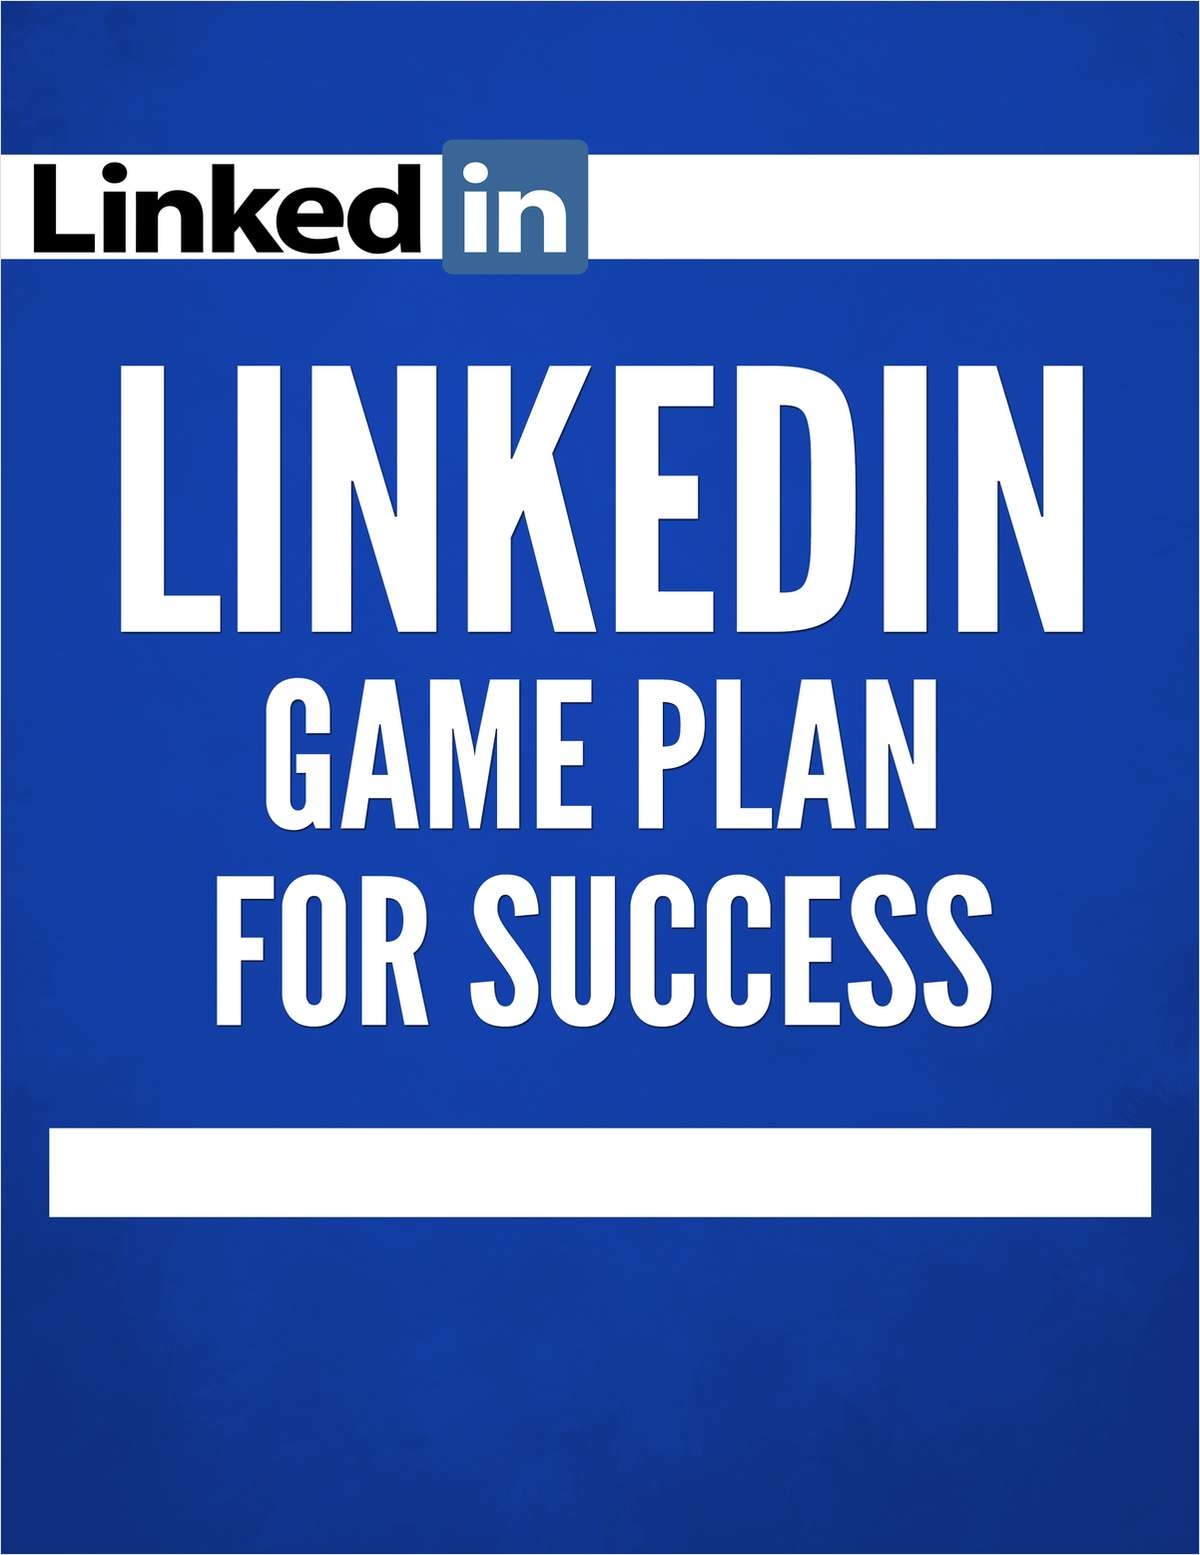 LinkedIn Game Plan for Success